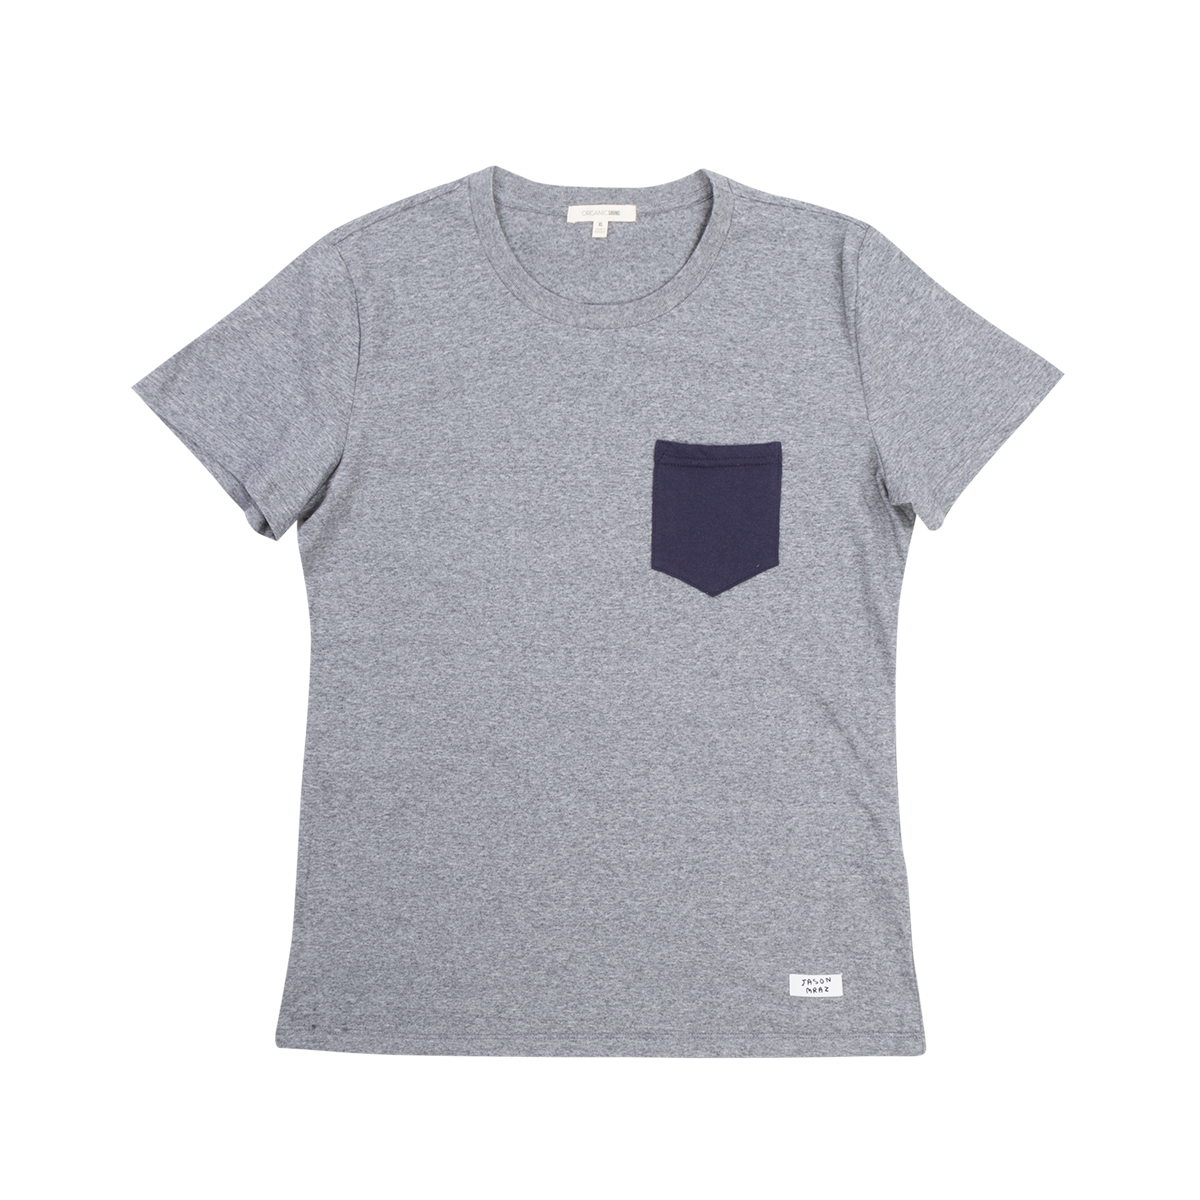 Jason Mraz Ladies Recycled Pocket T-shirt